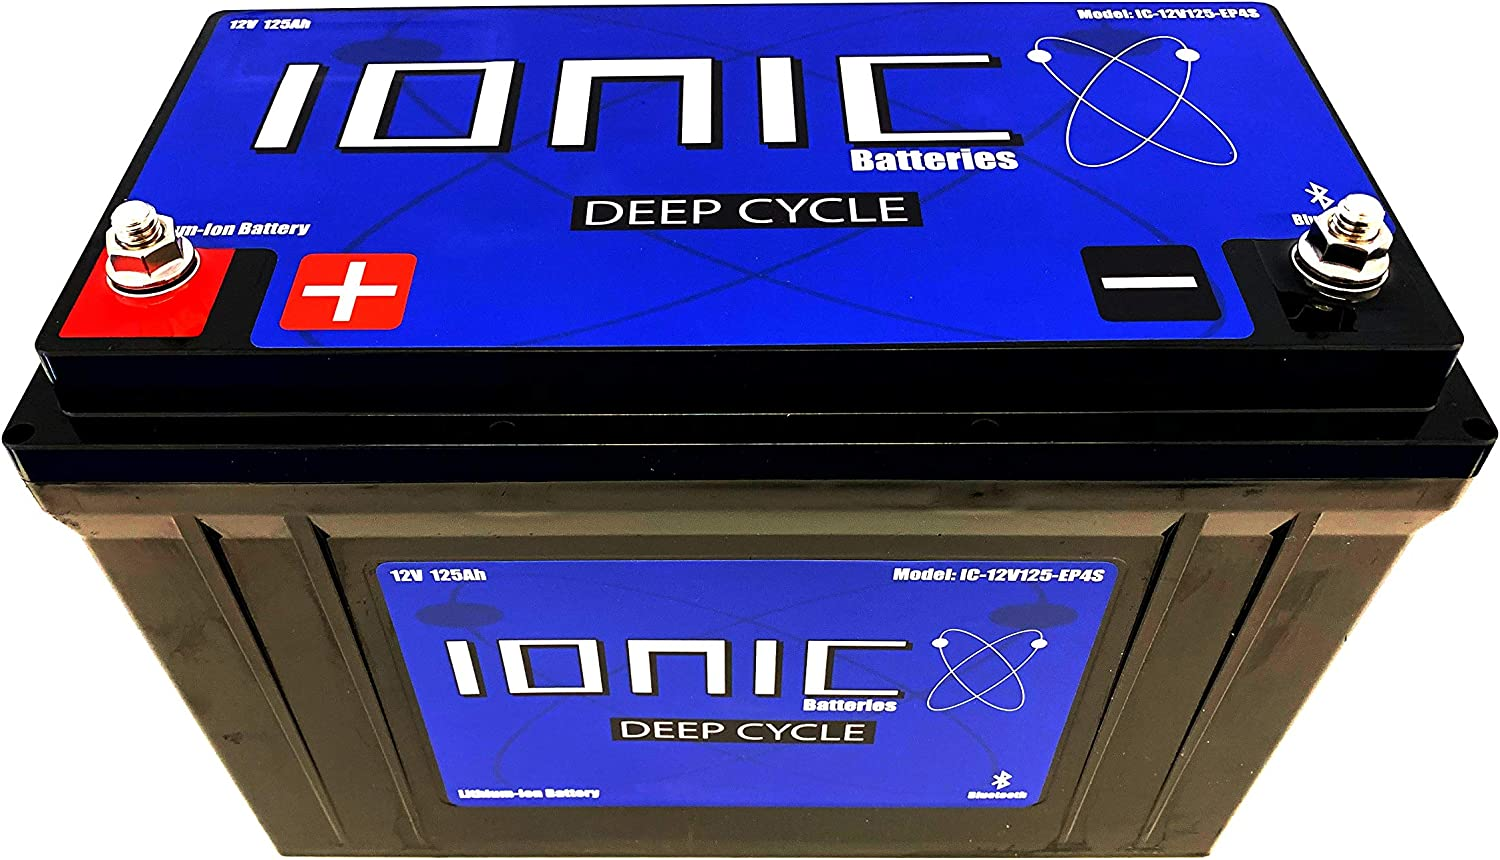 Lithium Ion Deep Cycle Battery - 12V125-EP 12V LiFePO4 NEW OFFicial before selling 1 Ionic